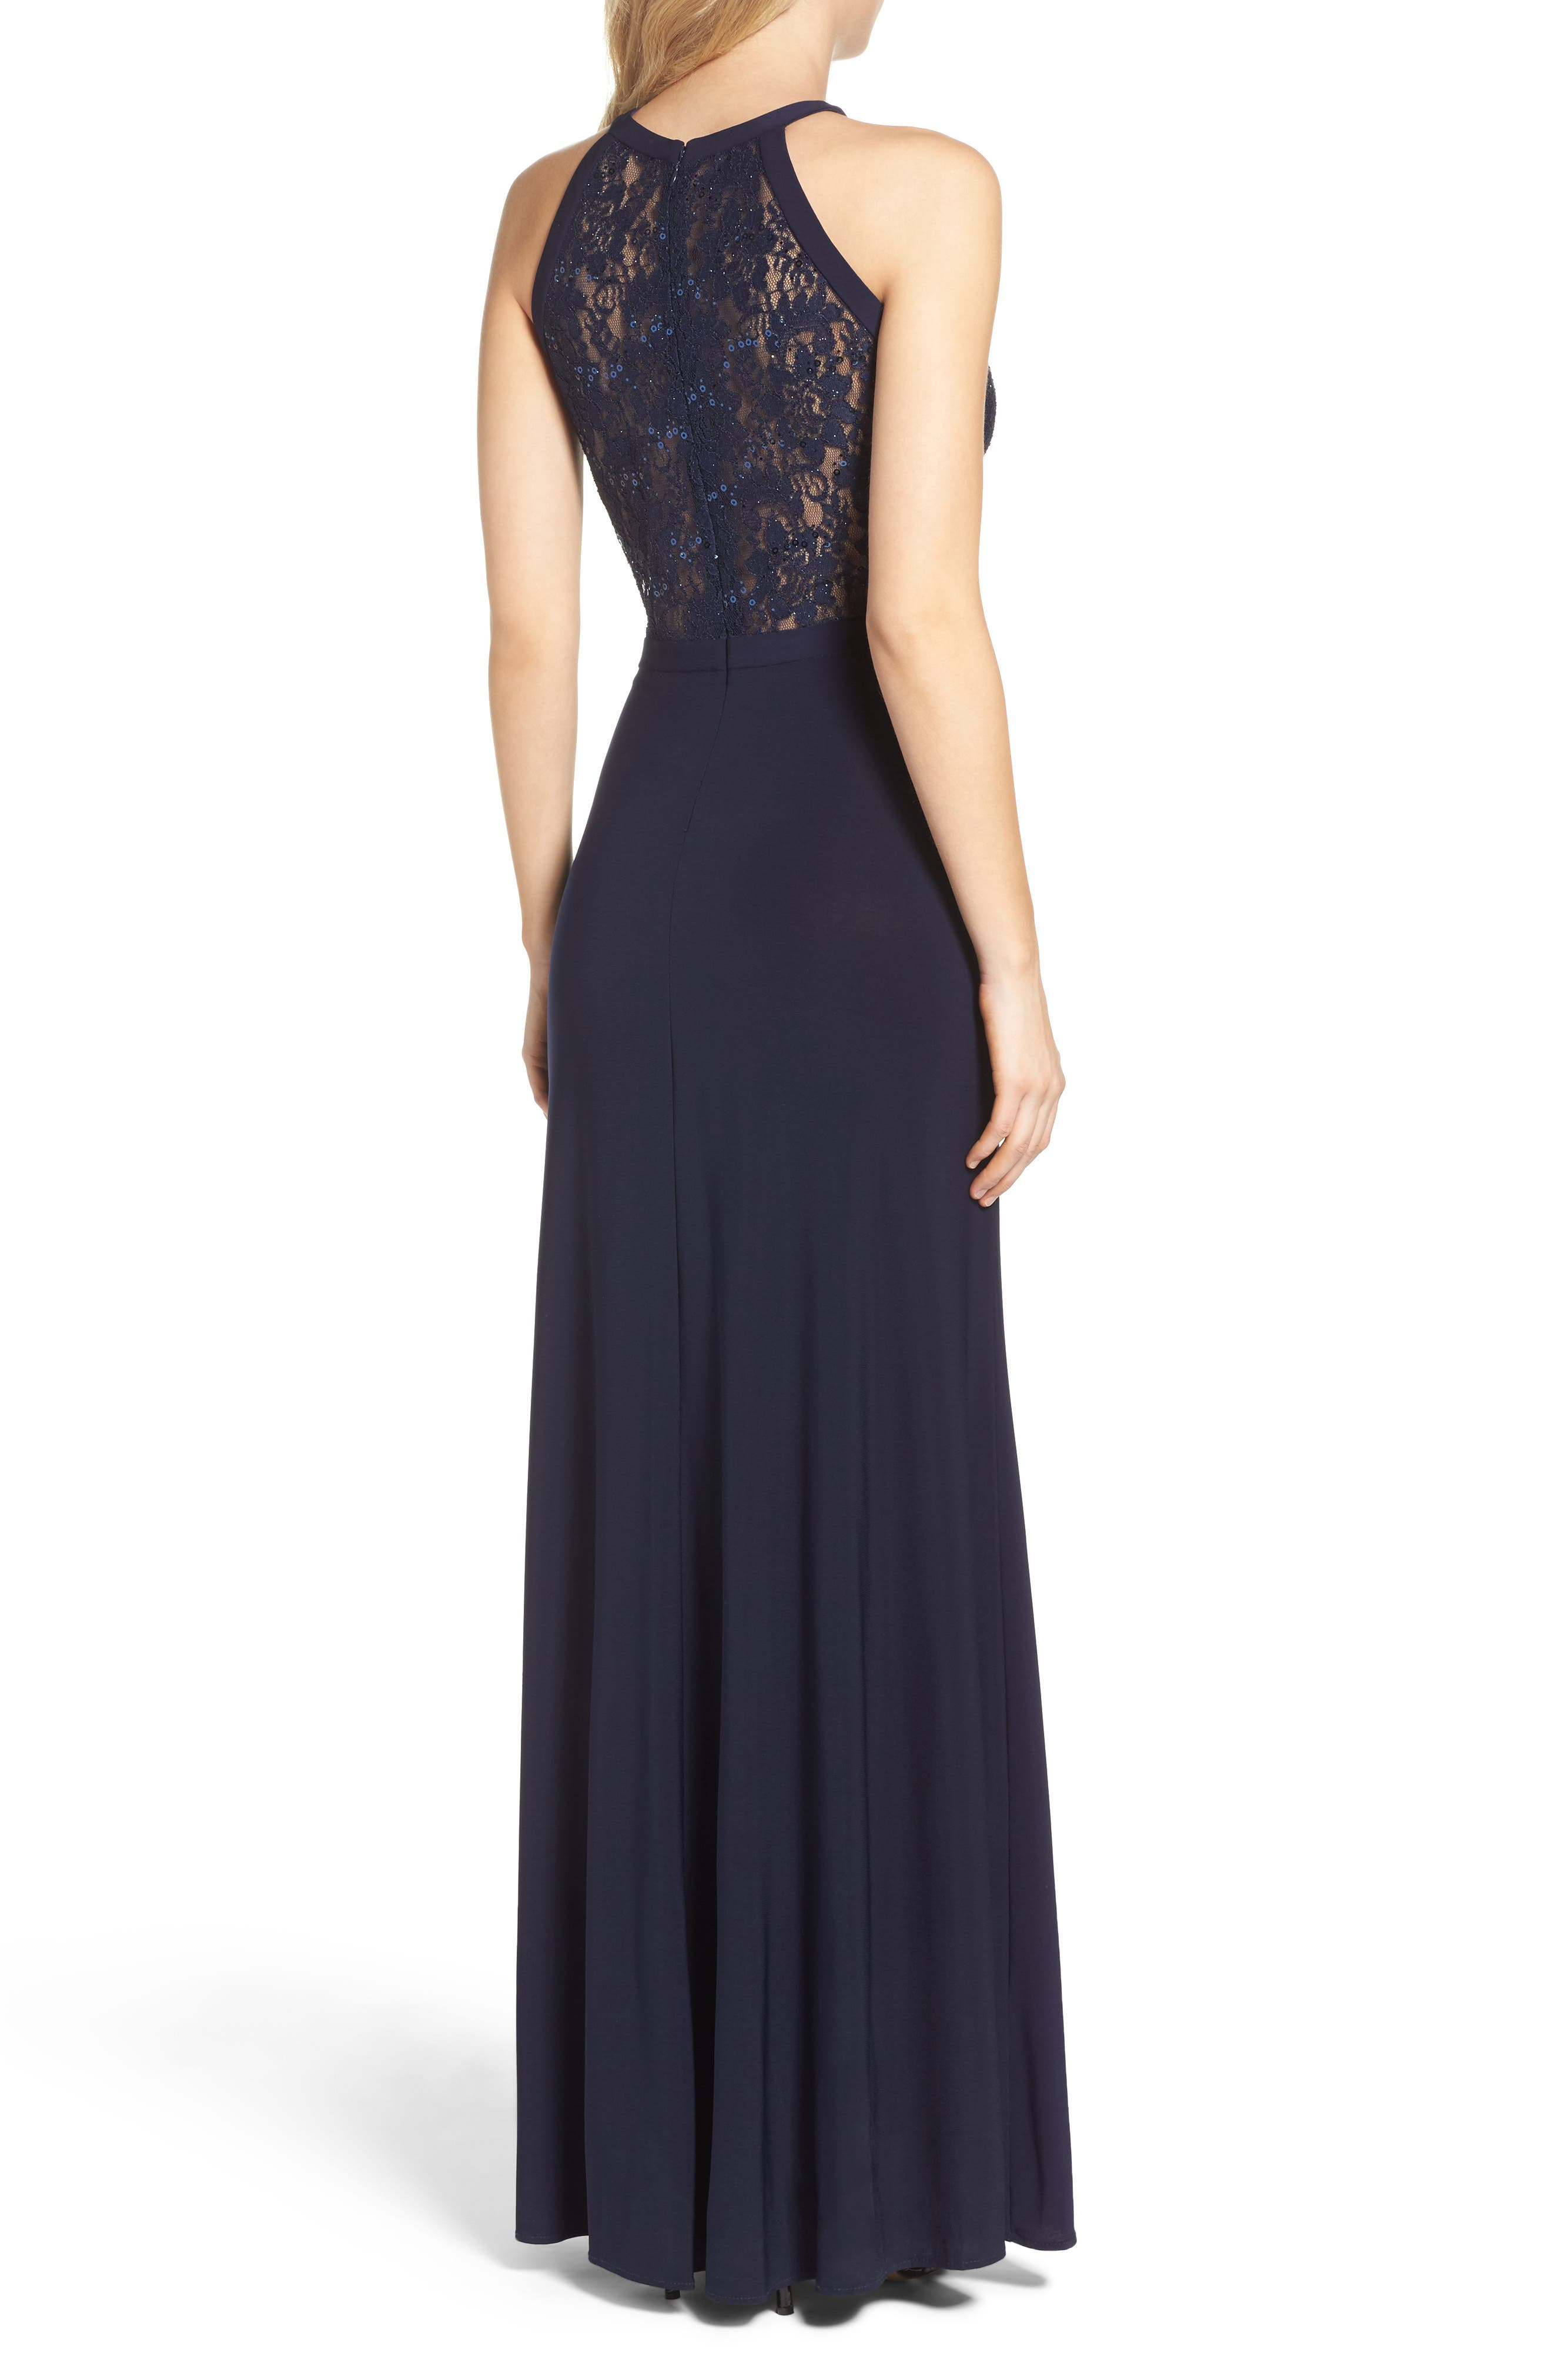 MORGAN & CO., Lace & Jersey Gown, Alternate thumbnail 2, color, NAVY